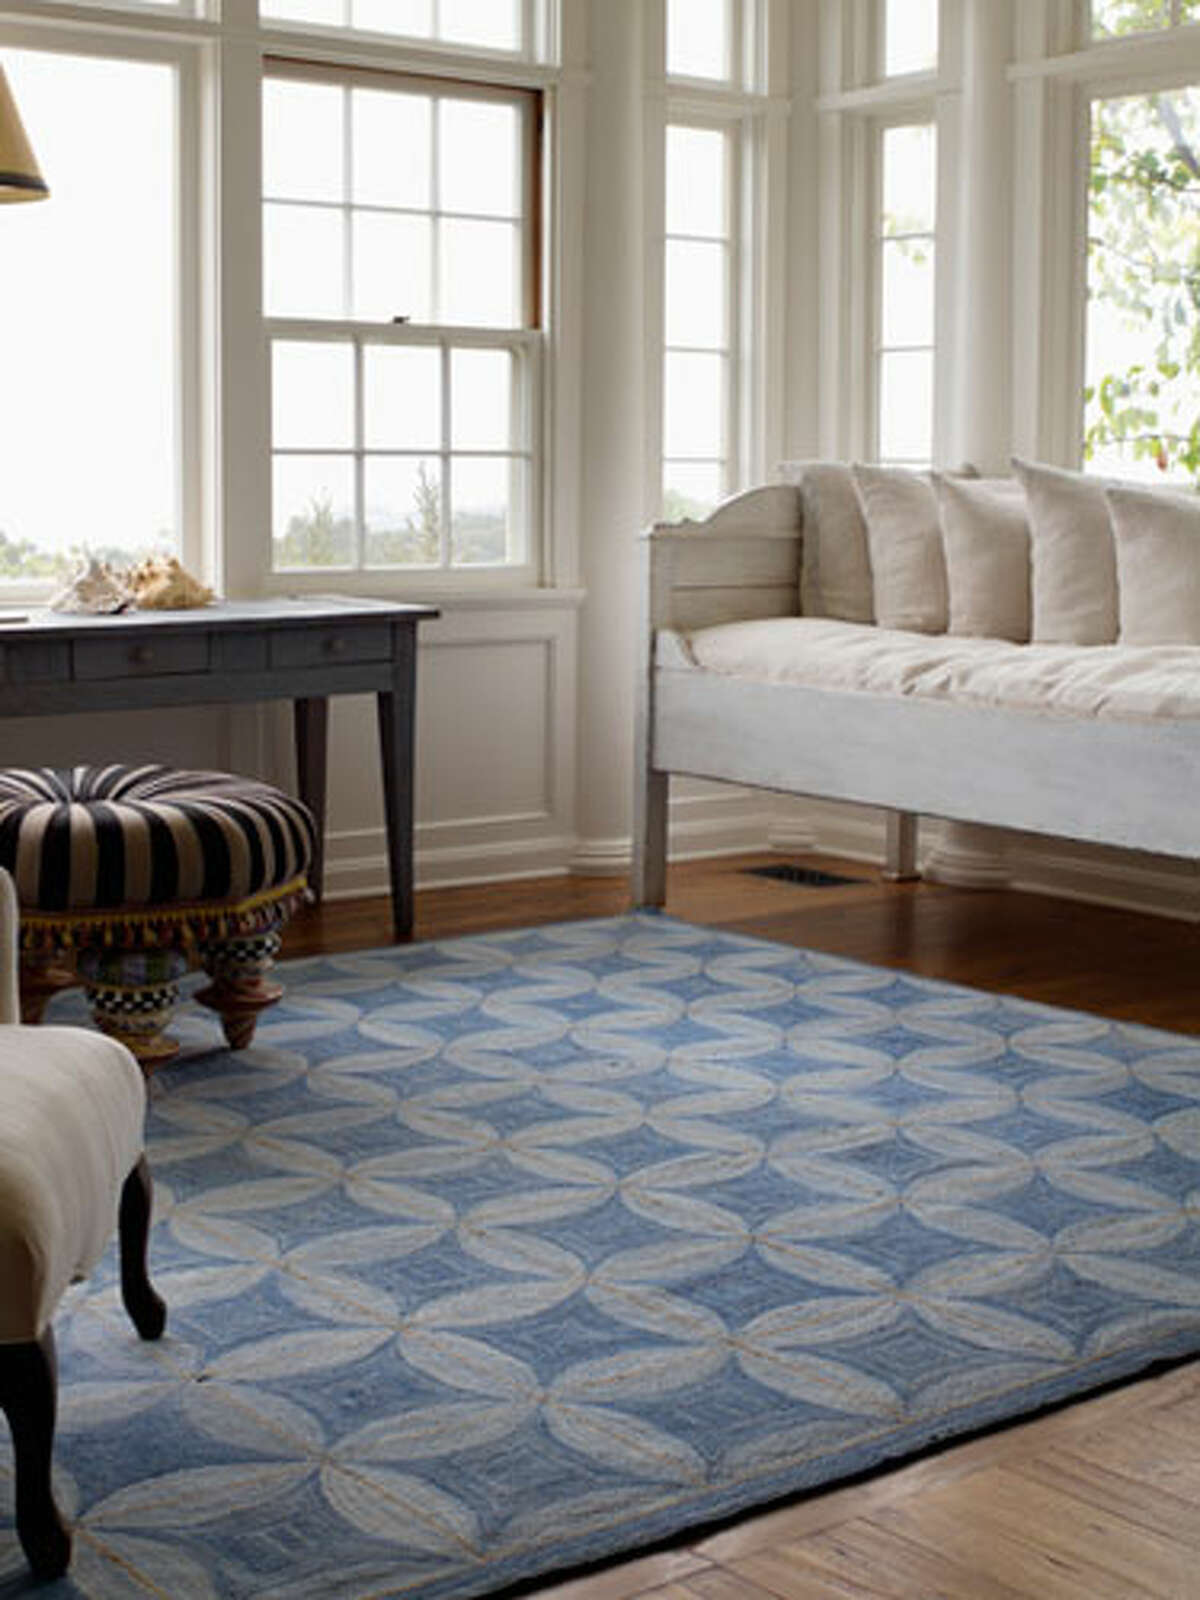 10 great hiding spots for germs Underside of Rugs To remove dust and dirt that's gone deep down into the rug, simply flip it over and vacuum the underside. 34 Double-Duty Home Items52 Easy Home-Organizing Tips10 Biggest Organizing MistakesHaircuts That Take Off 10 Years10 Ways to Boost Your Sexual Confidence